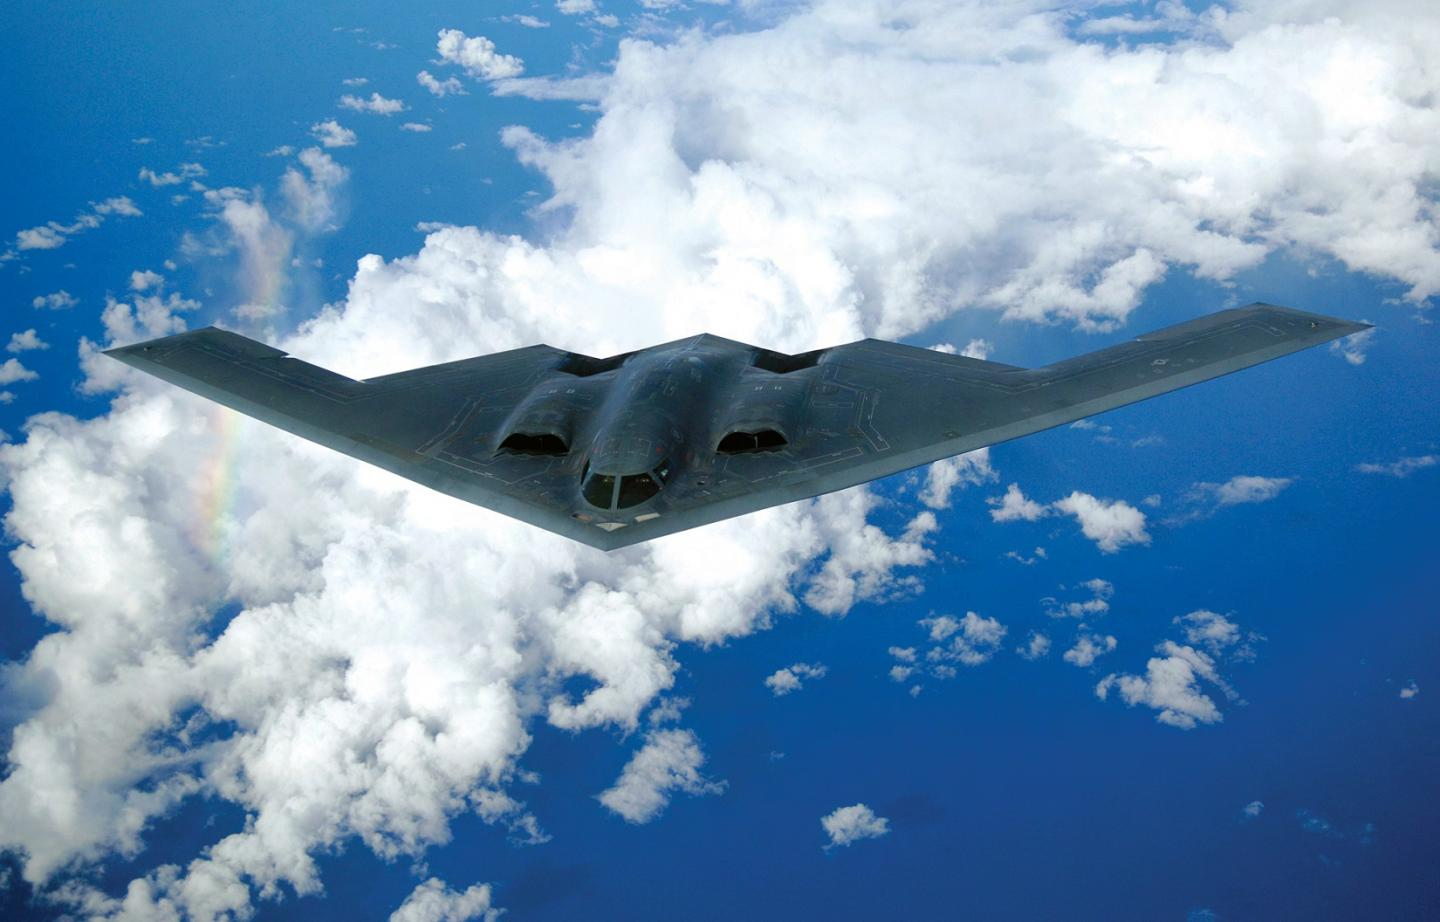 Why the B-21 Stealth Bomber Could Be a the Ultimate Game Changer